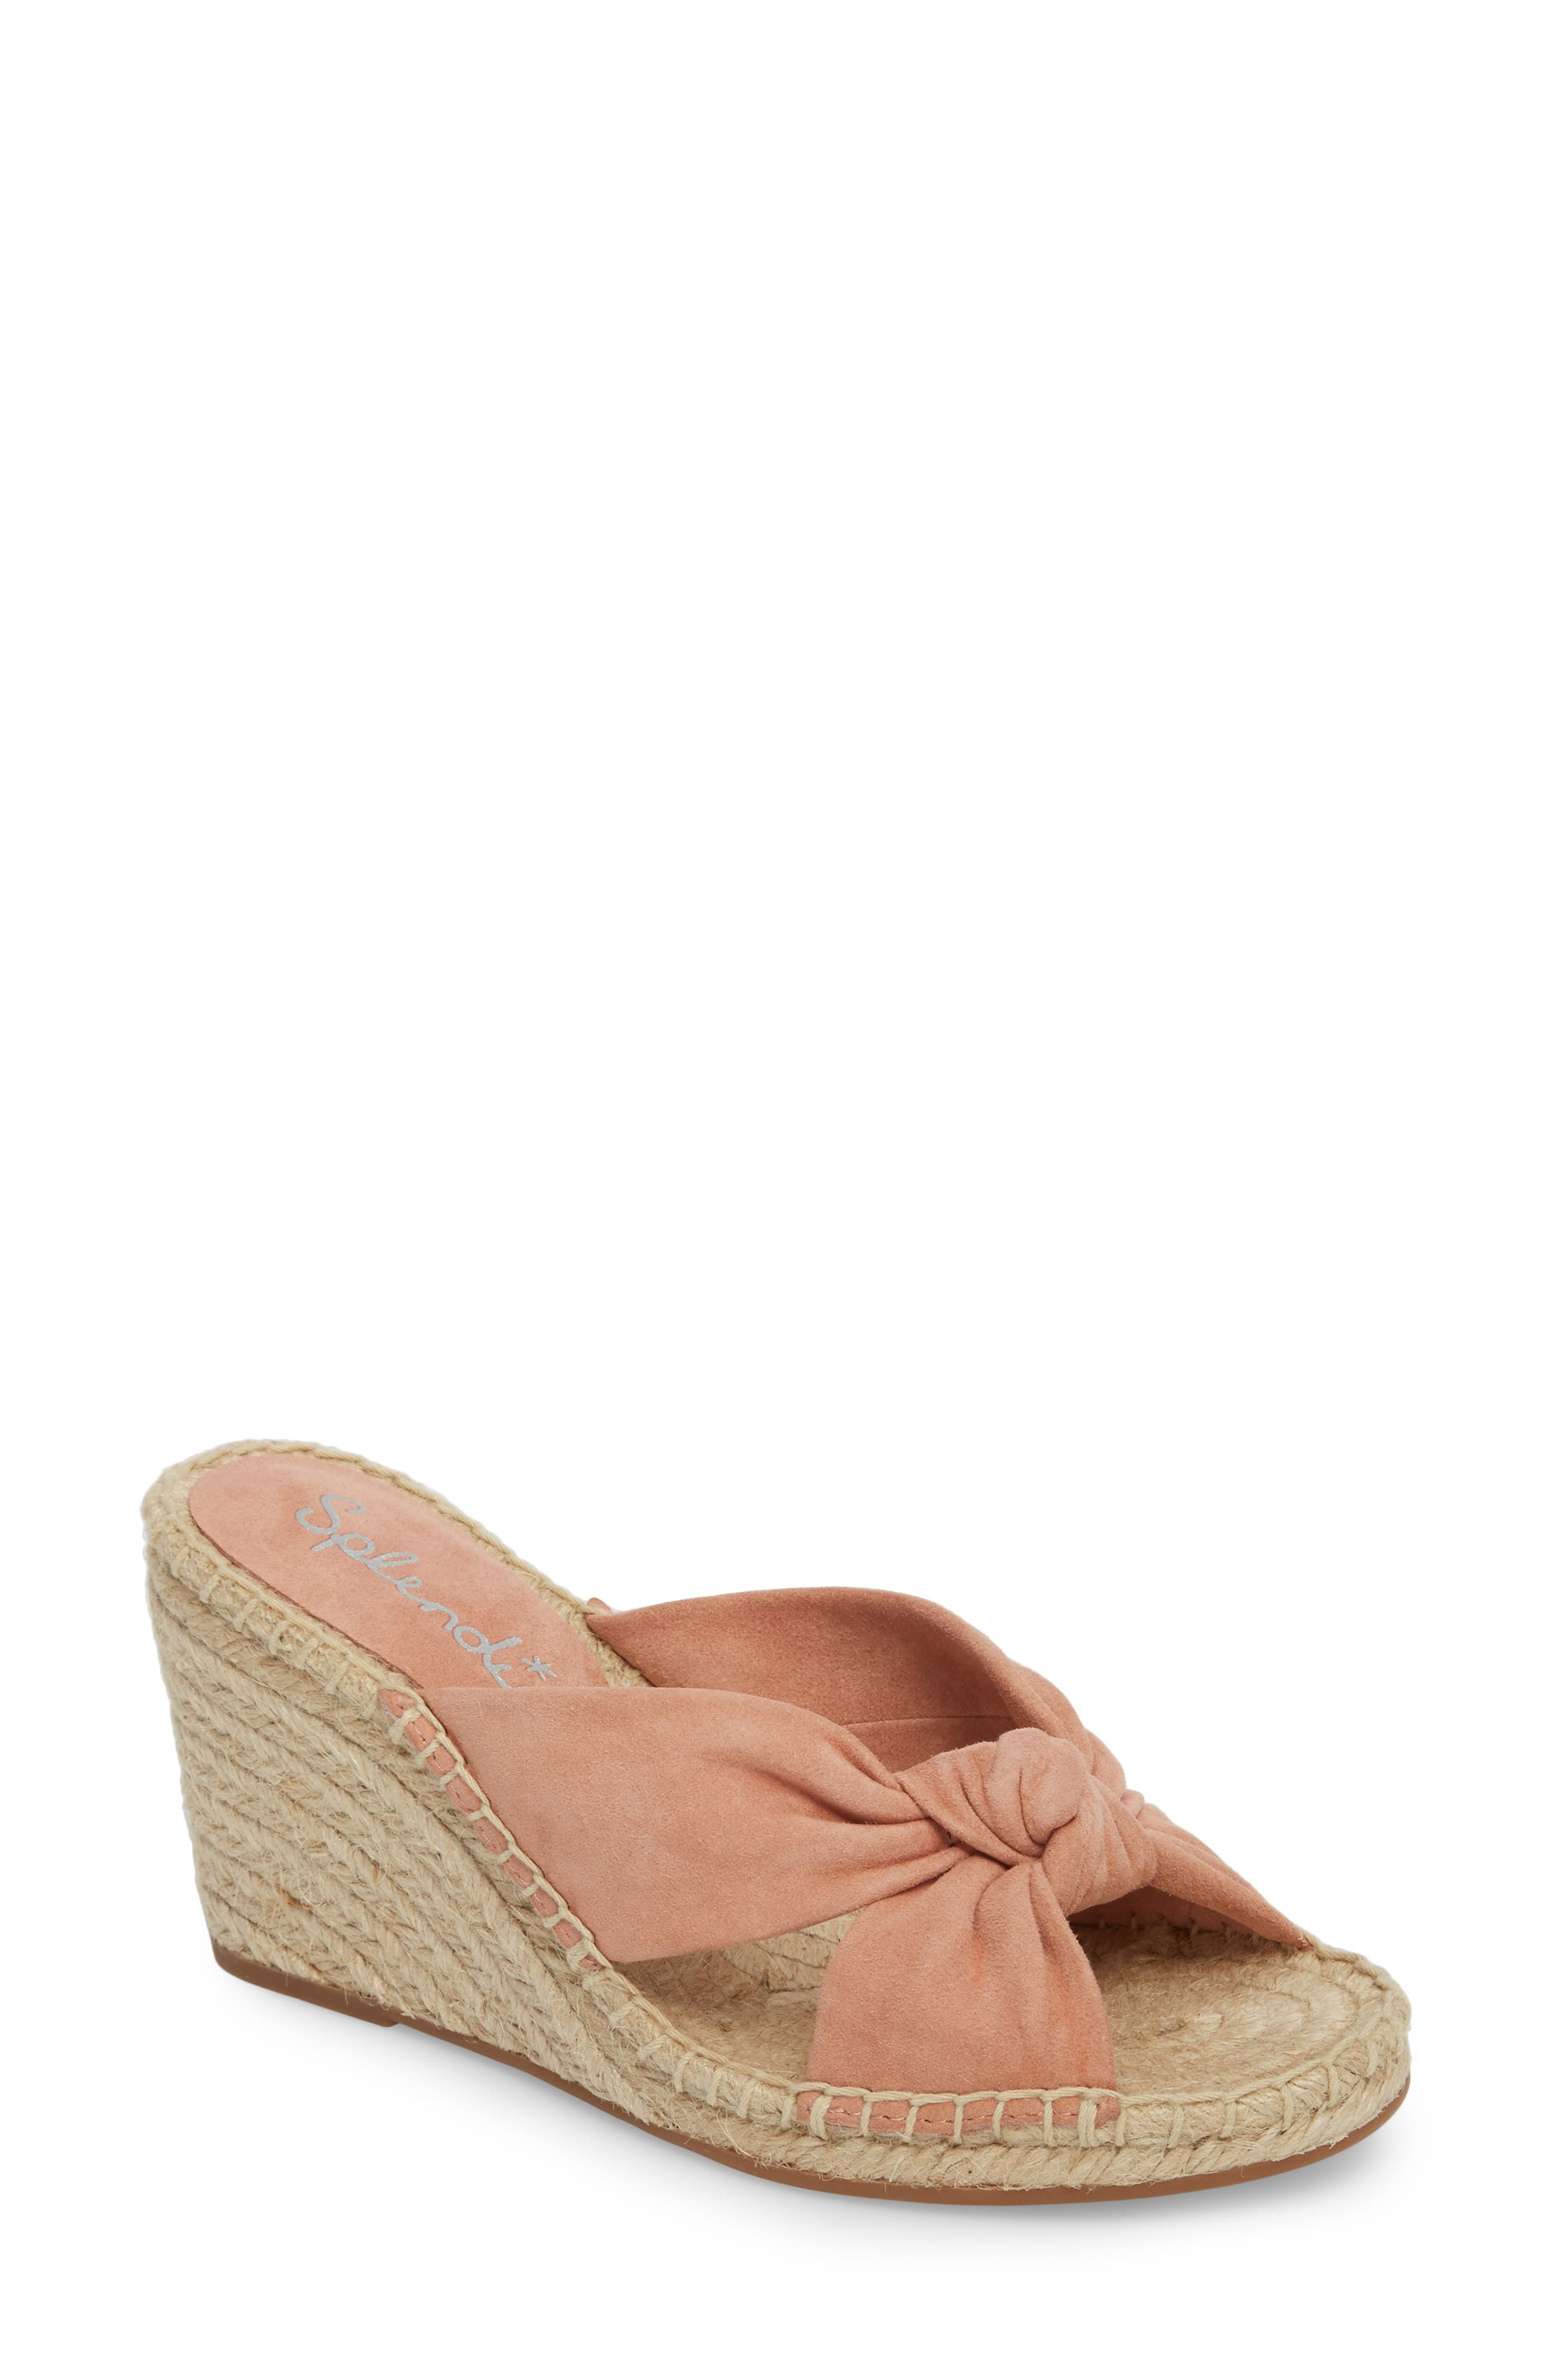 Bautista Knotted Wedge Sandal,                             Main thumbnail 1, color,                             DARK BLUSH SUEDE